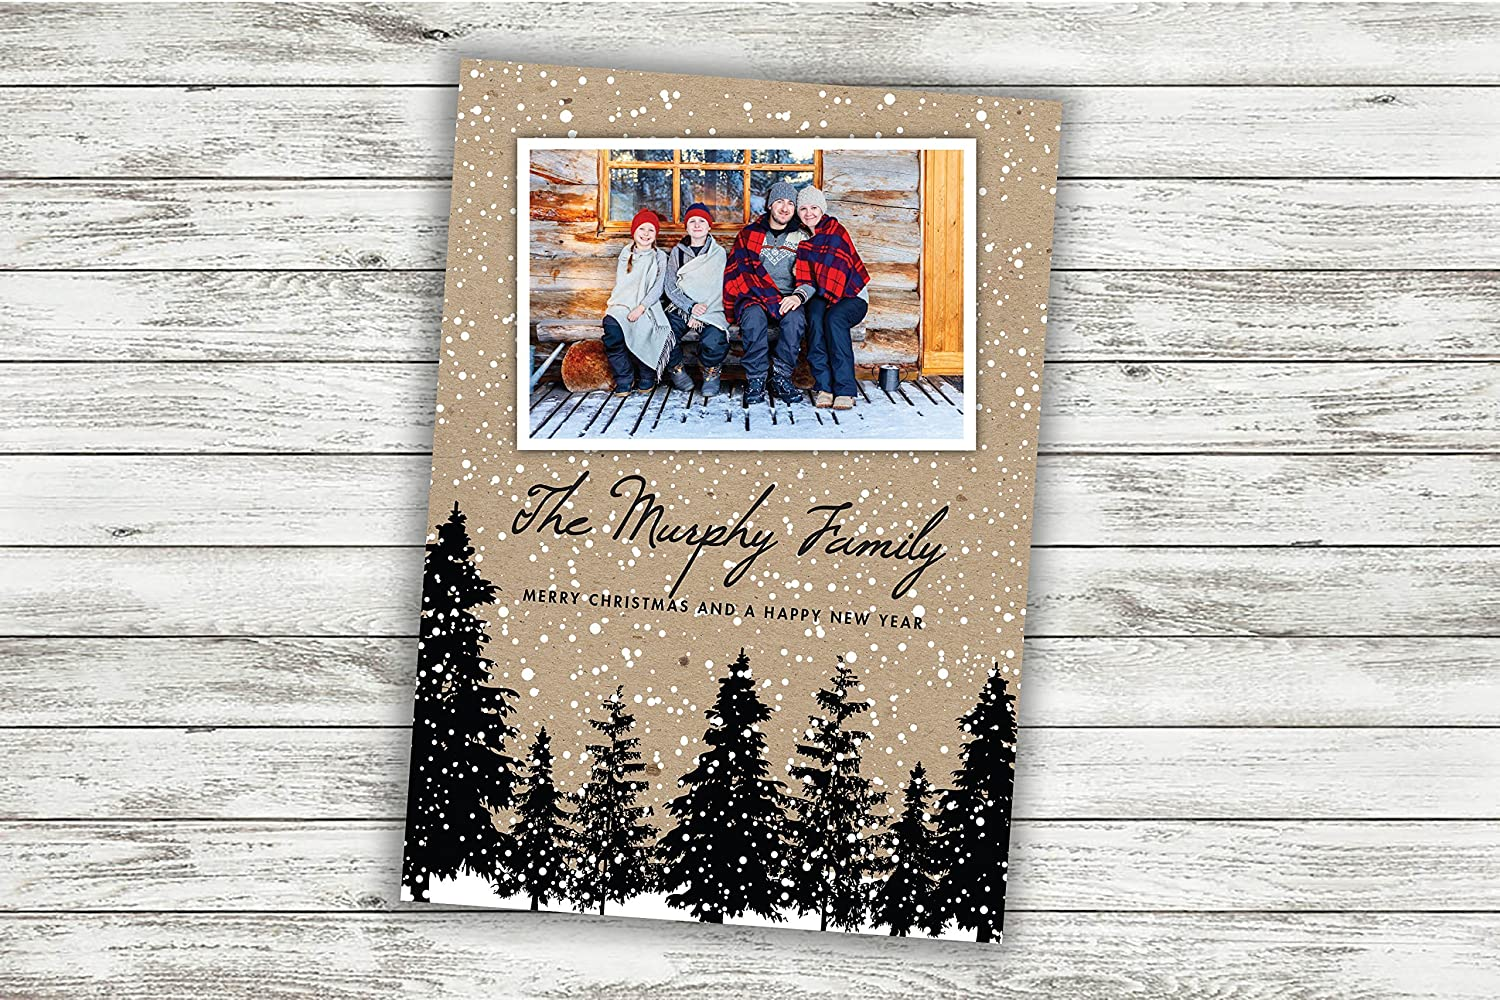 Personalized Holiday Cards Unique Christmas Cards Christmas Photo Card Custom Photo Holiday Cards Christmas Card Custom Holiday Cards